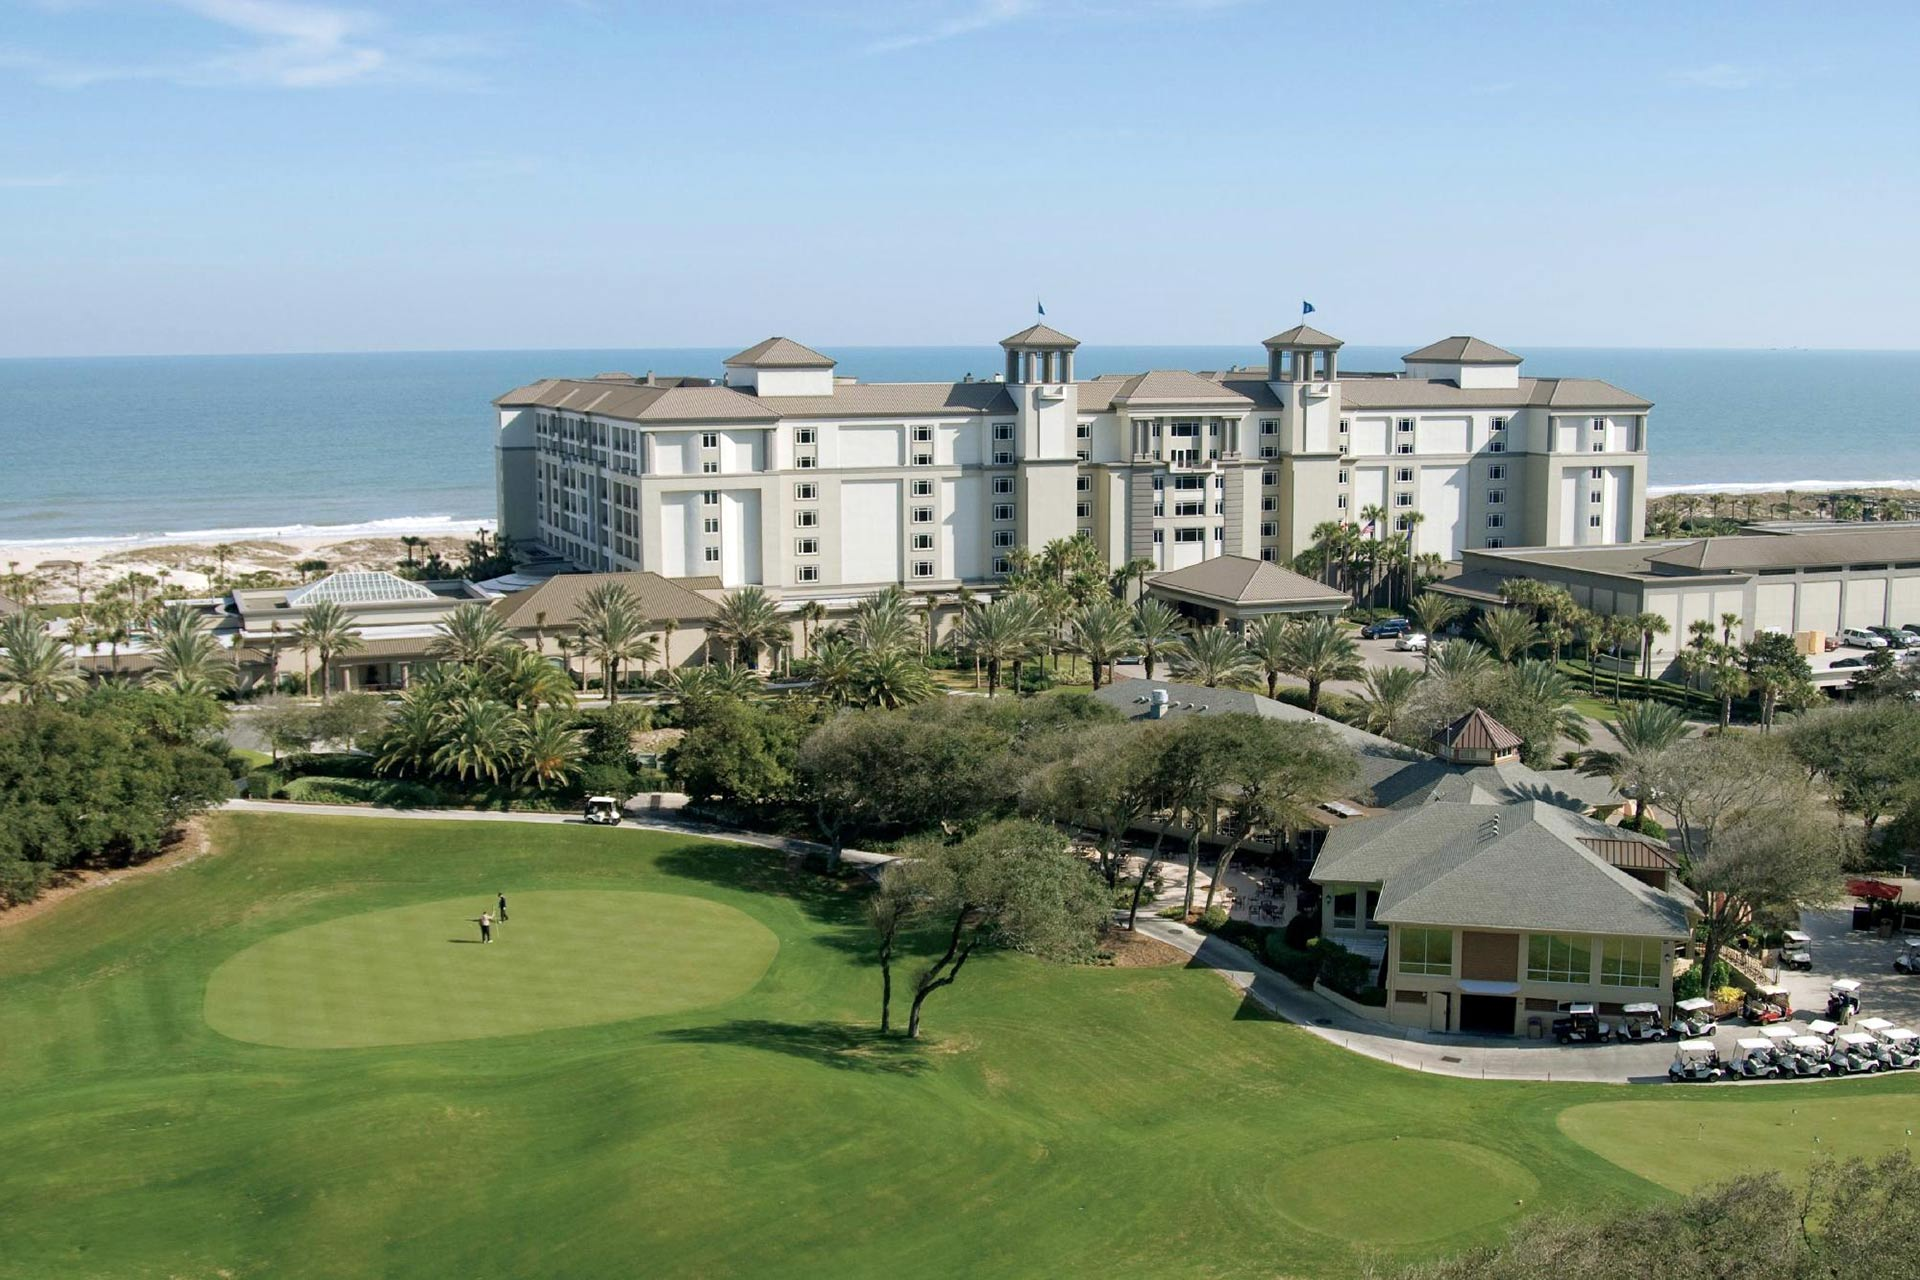 Ritz-Carlton Amelia Island in Florida